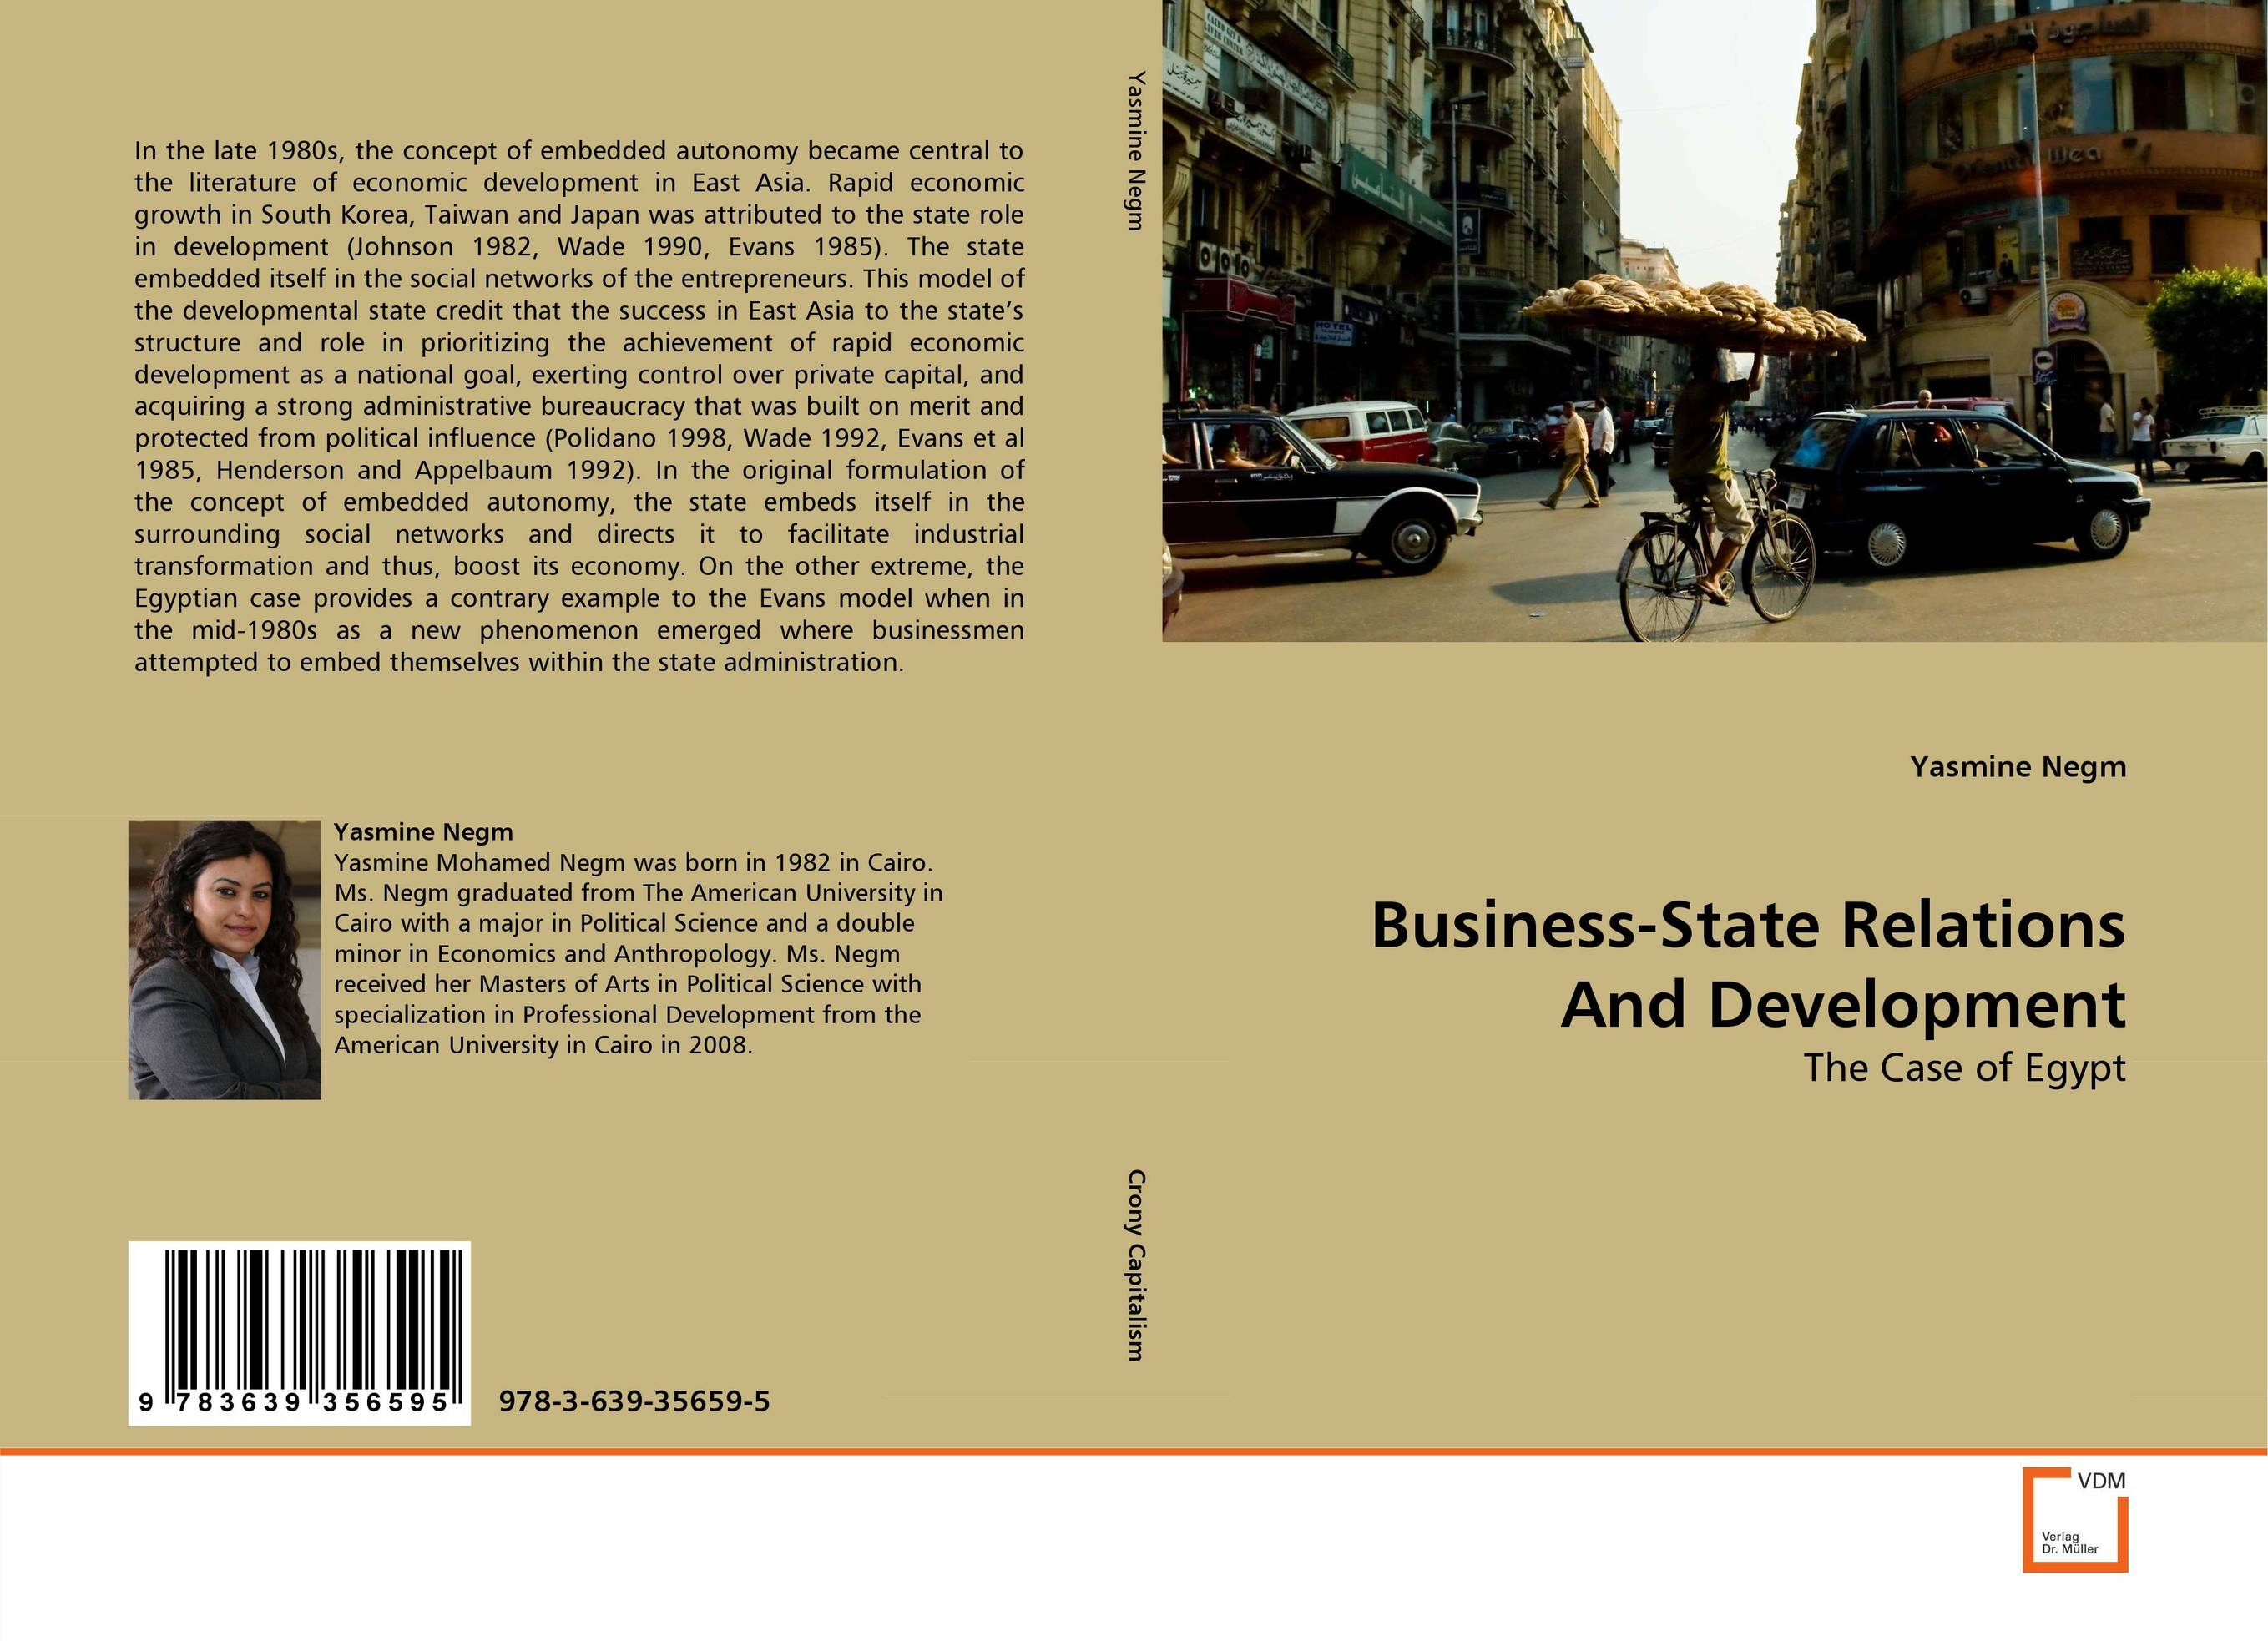 Business-State Relations And Development developmental state and economic transformation the case of ethiopia